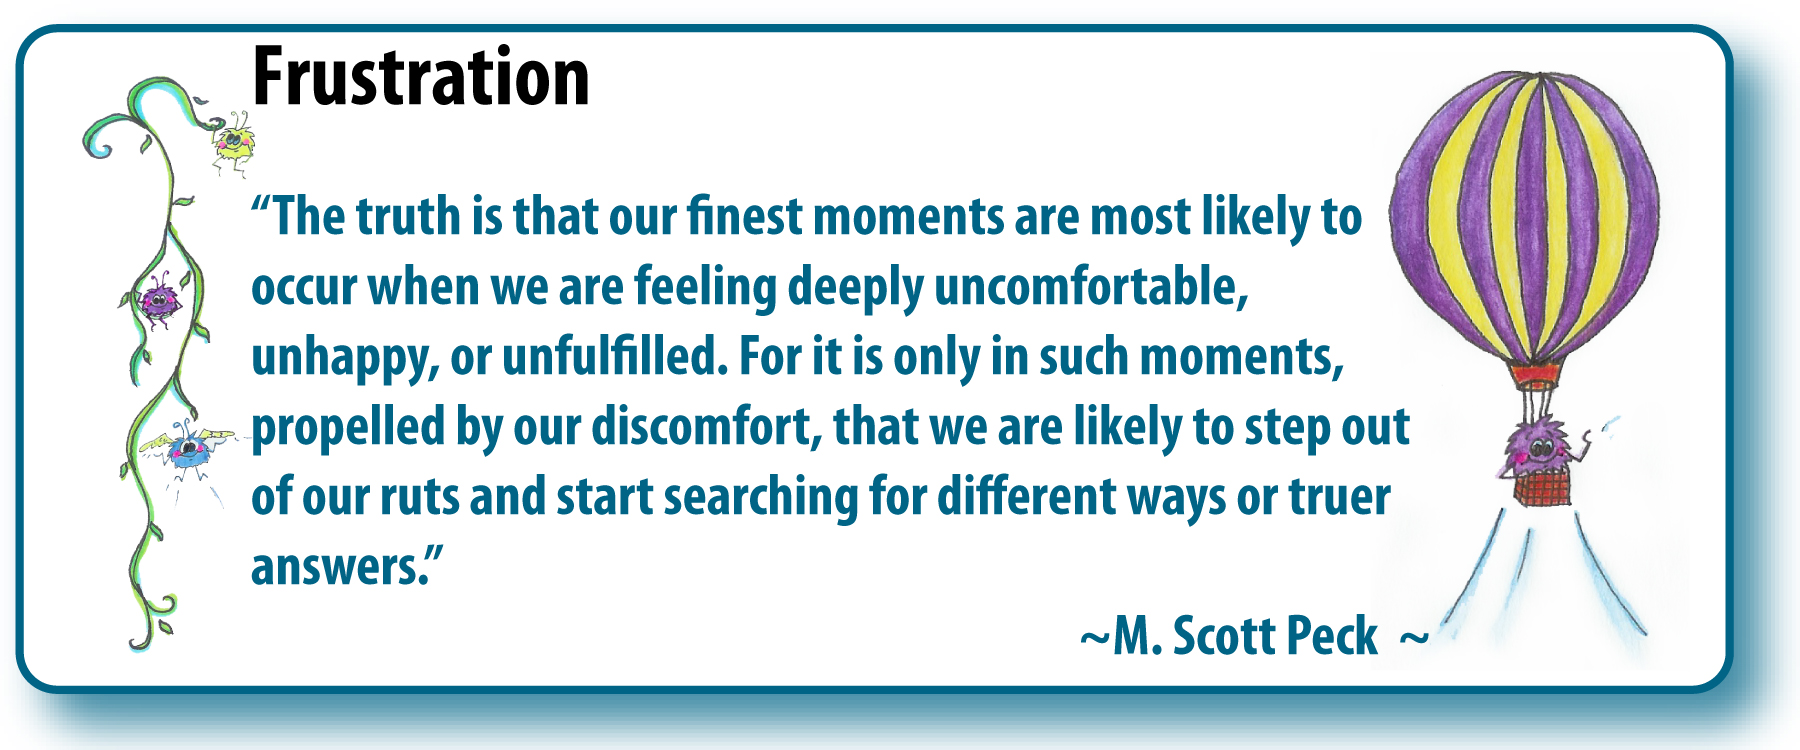 Frustration Quotes About Love. QuotesGram  Frustration Quo...